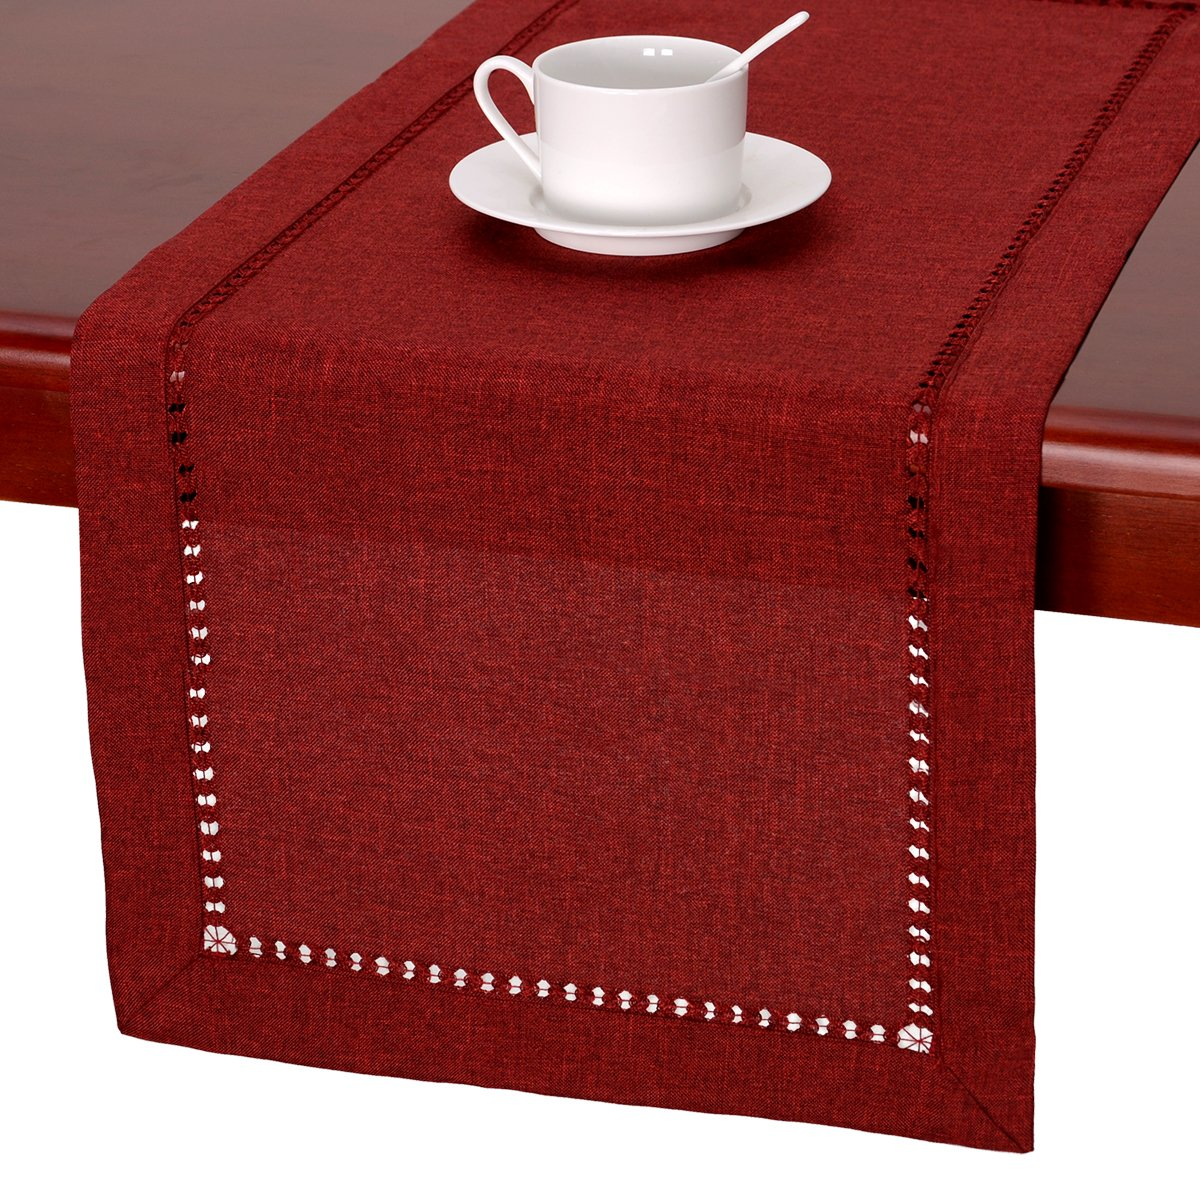 Handmade Hemstitched Polyester Rectangle Table Runners And Dresser Scarves, Cranberry 14x84 inch